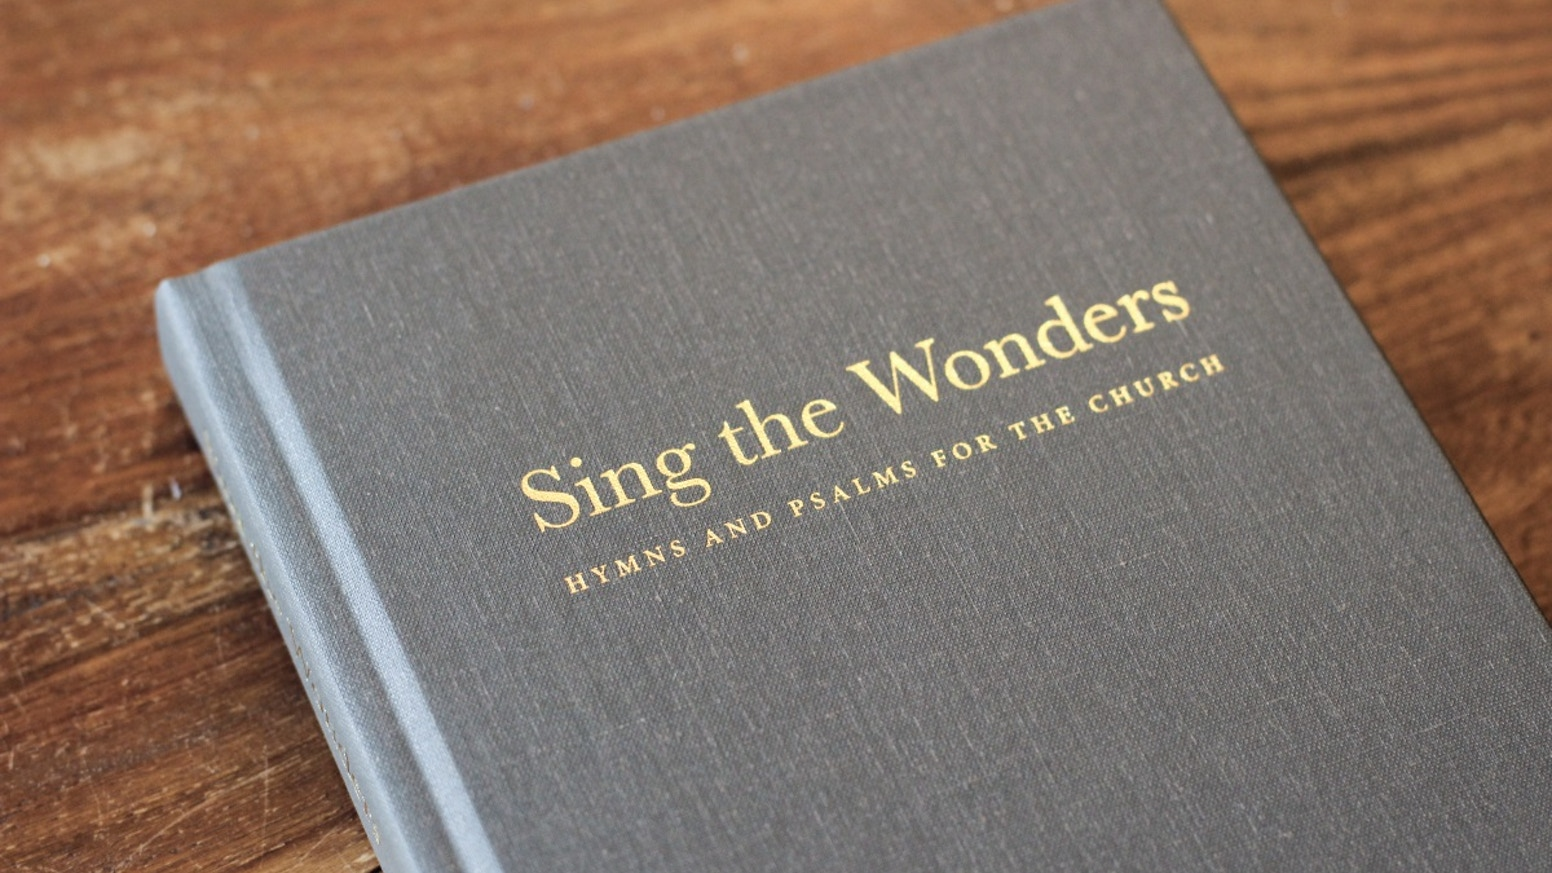 An expanded second edition of our popular hymnal, shipping August 2018. Timeless classic hymns and new songs for the church.